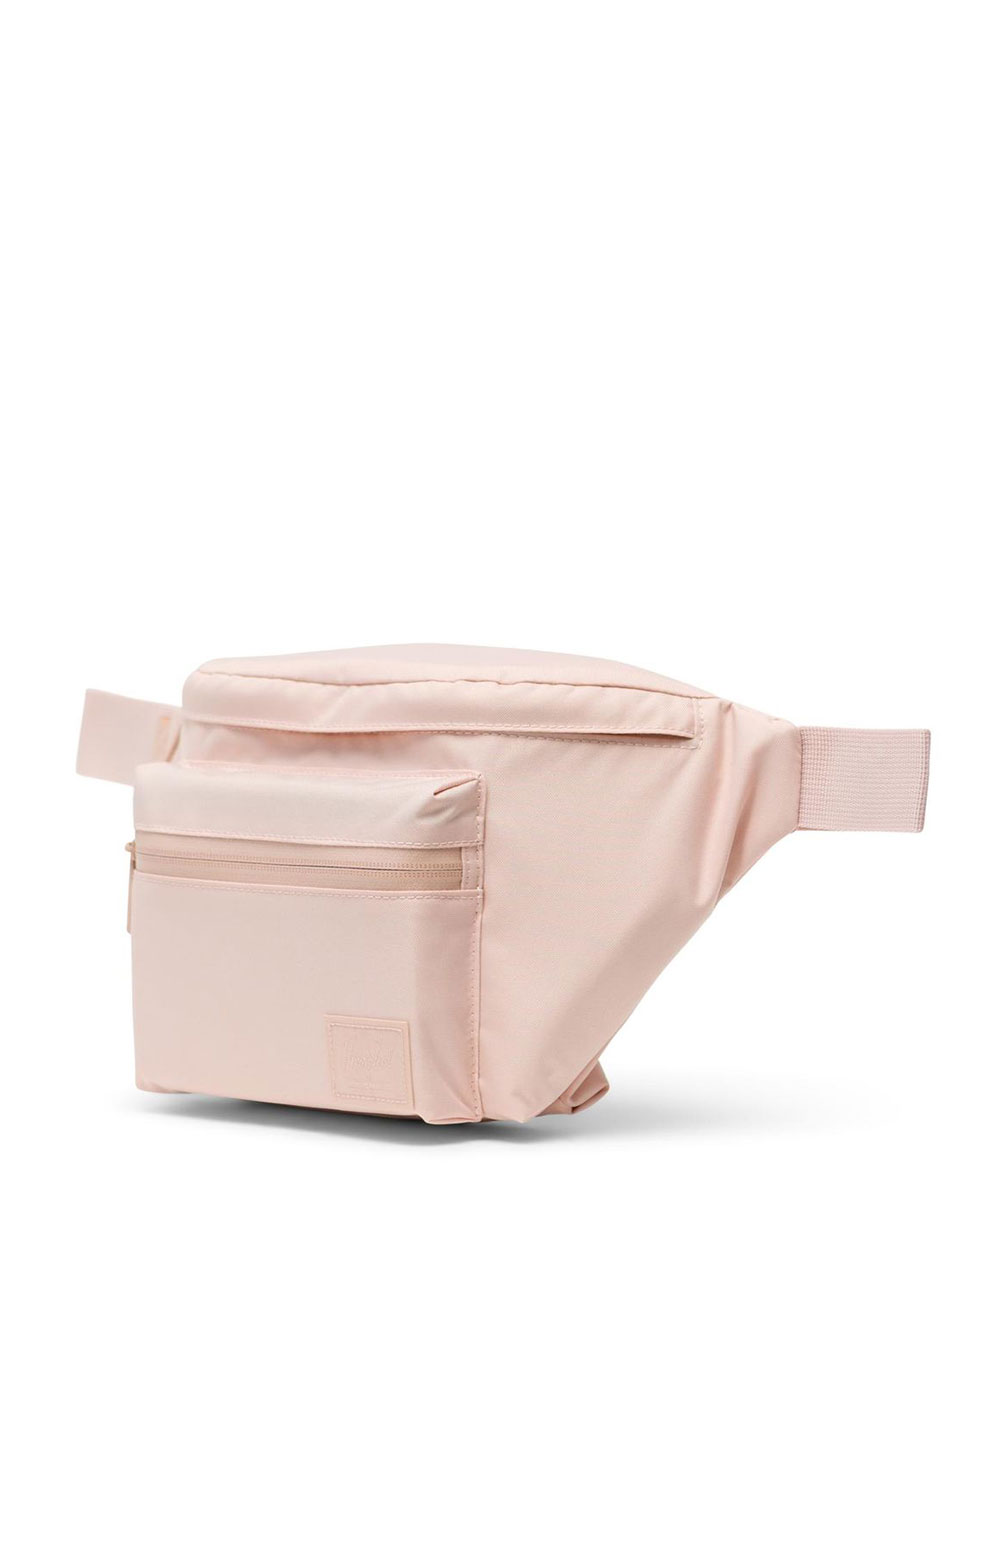 Seventeen Light Hip Pack - Cameo Rose  2